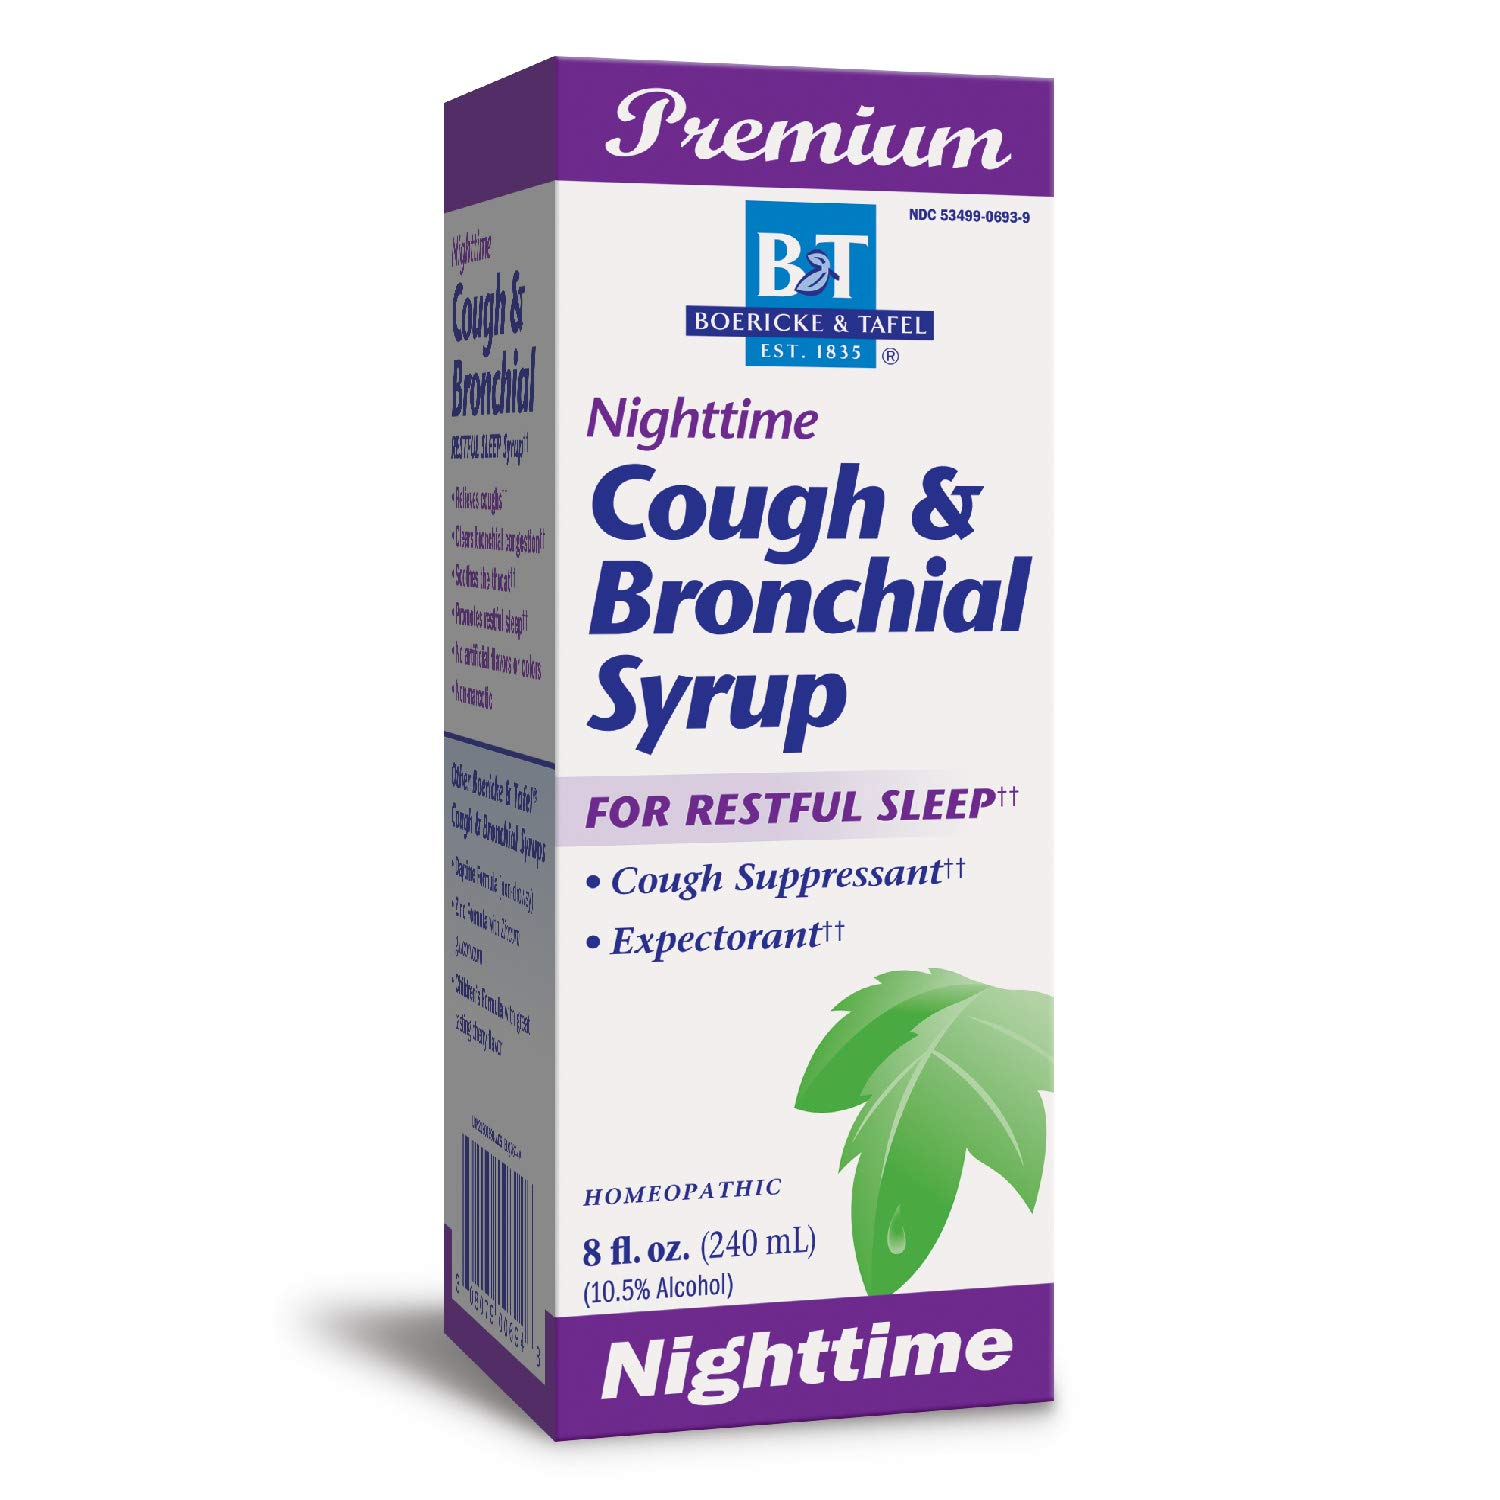 Nature's Way B&T Nighttime Cough & Bronchial Syrup for Restful Sleep Homeopathic, , Purple Cherry 8.0 Fl Oz